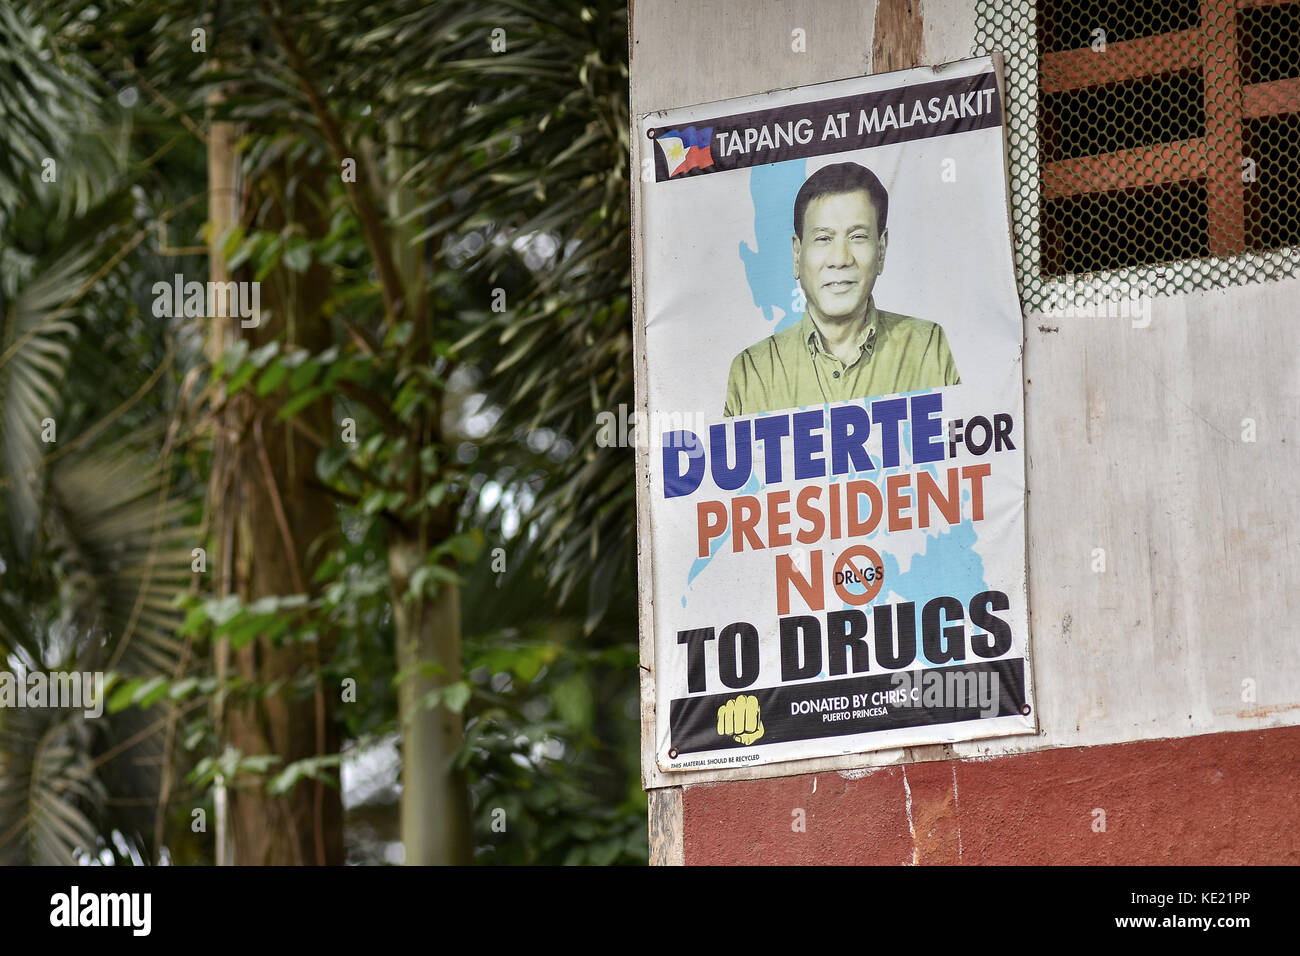 Philippines President Rodrigo Duterte campaign poster promoting his controversial War on Drugs / No to Drugs. - Stock Image